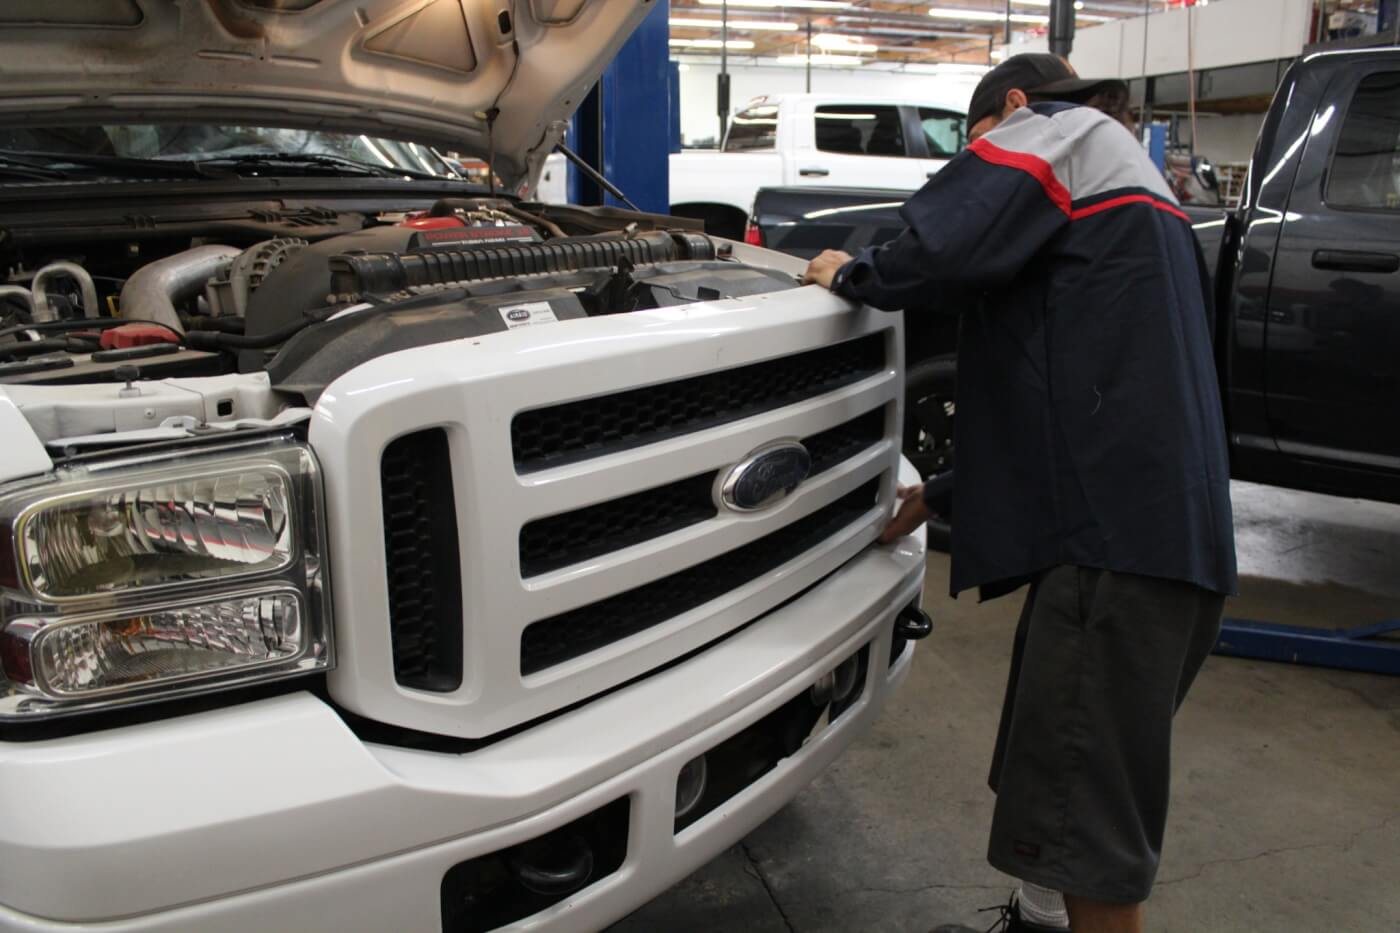 2. Just like last month's bumper installation, Brett Corder of 4Wheel Parts Wholesaler is fitting the grille to our F-250. He starts by unbolting the stock grille, which is held in place with four small bolts along the top and retaining clips along the bottom. The grille must be removed with care, as the shell will be re-used.